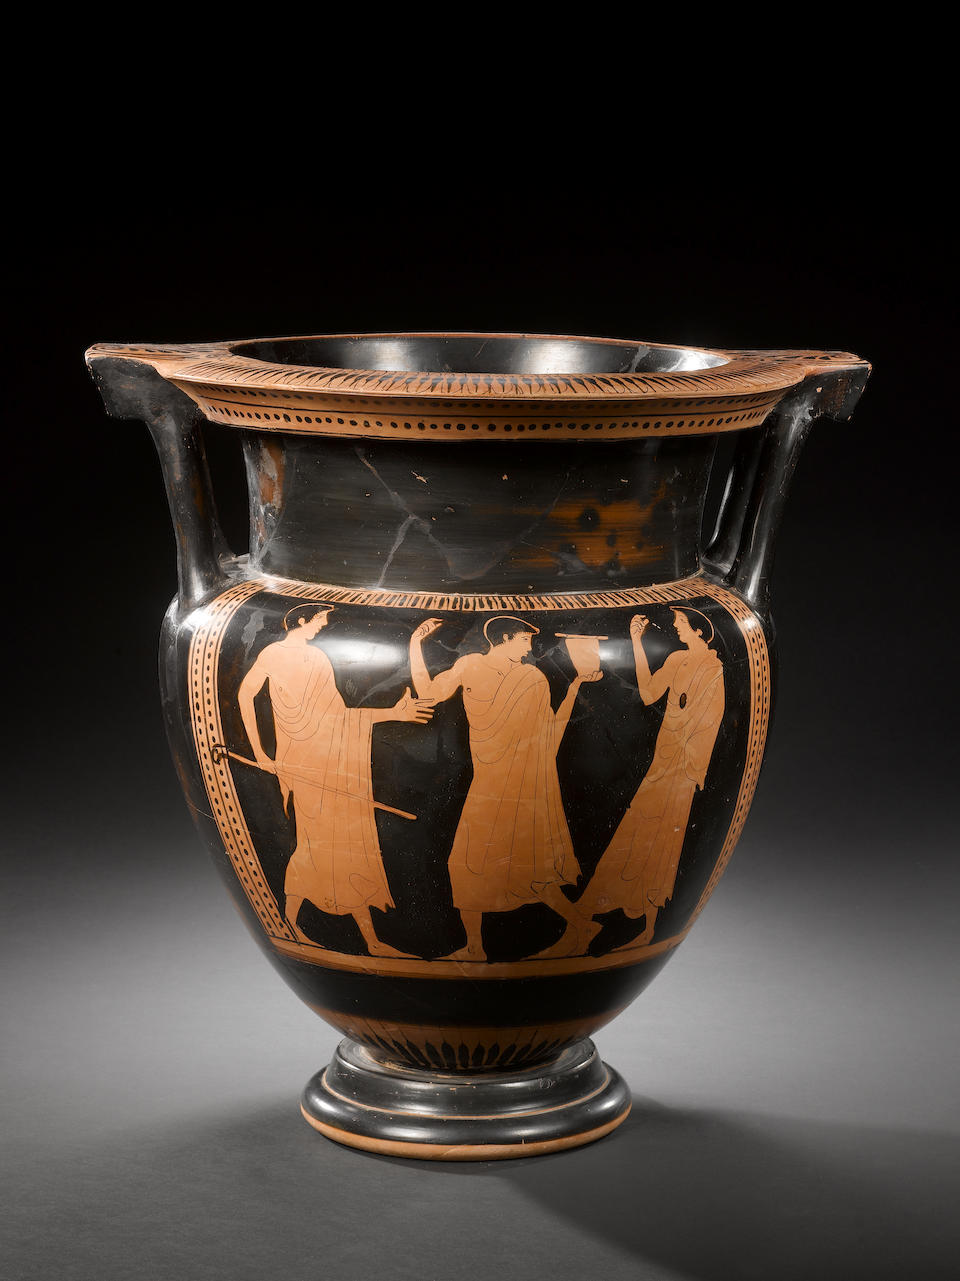 A large Attic red-figure column krater